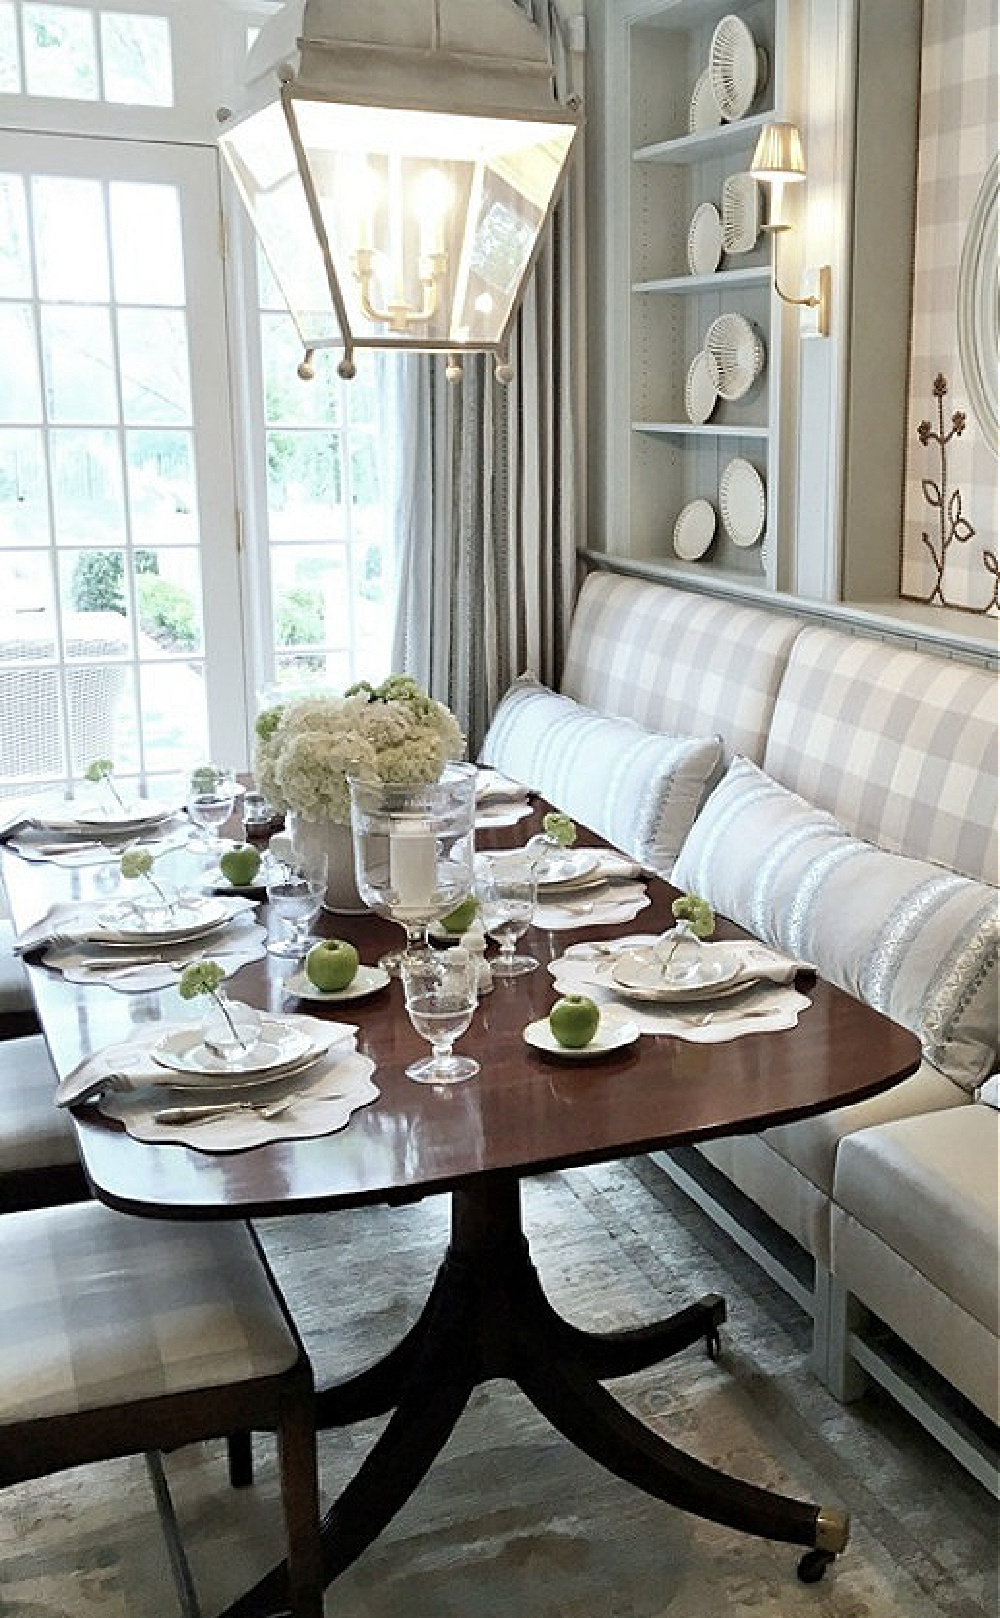 Farrow & Ball Light Blue painted cabinetry in a stunning traditional breakfast dining area in Atlanta. Design by Lauren DeLoach. Antiques and buffalo check fabric by Cowtan & Tout. #traditionalstyle #diningroom #interiordesign #lightblue